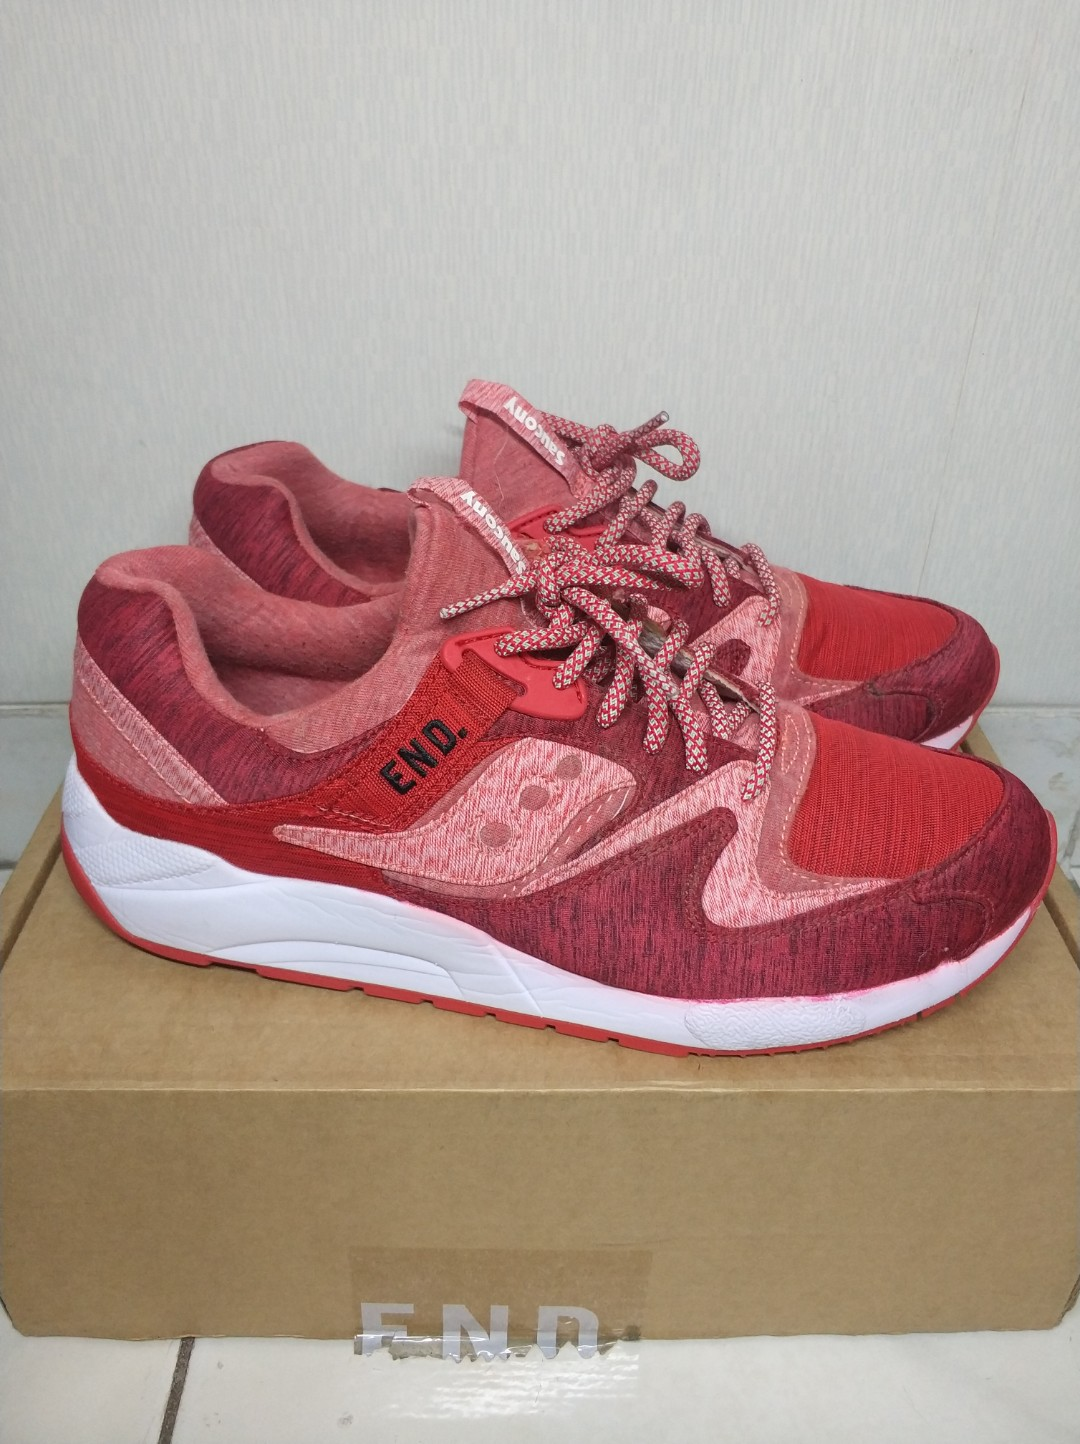 Saucony End. X Grid 9000 'red Noise' for men